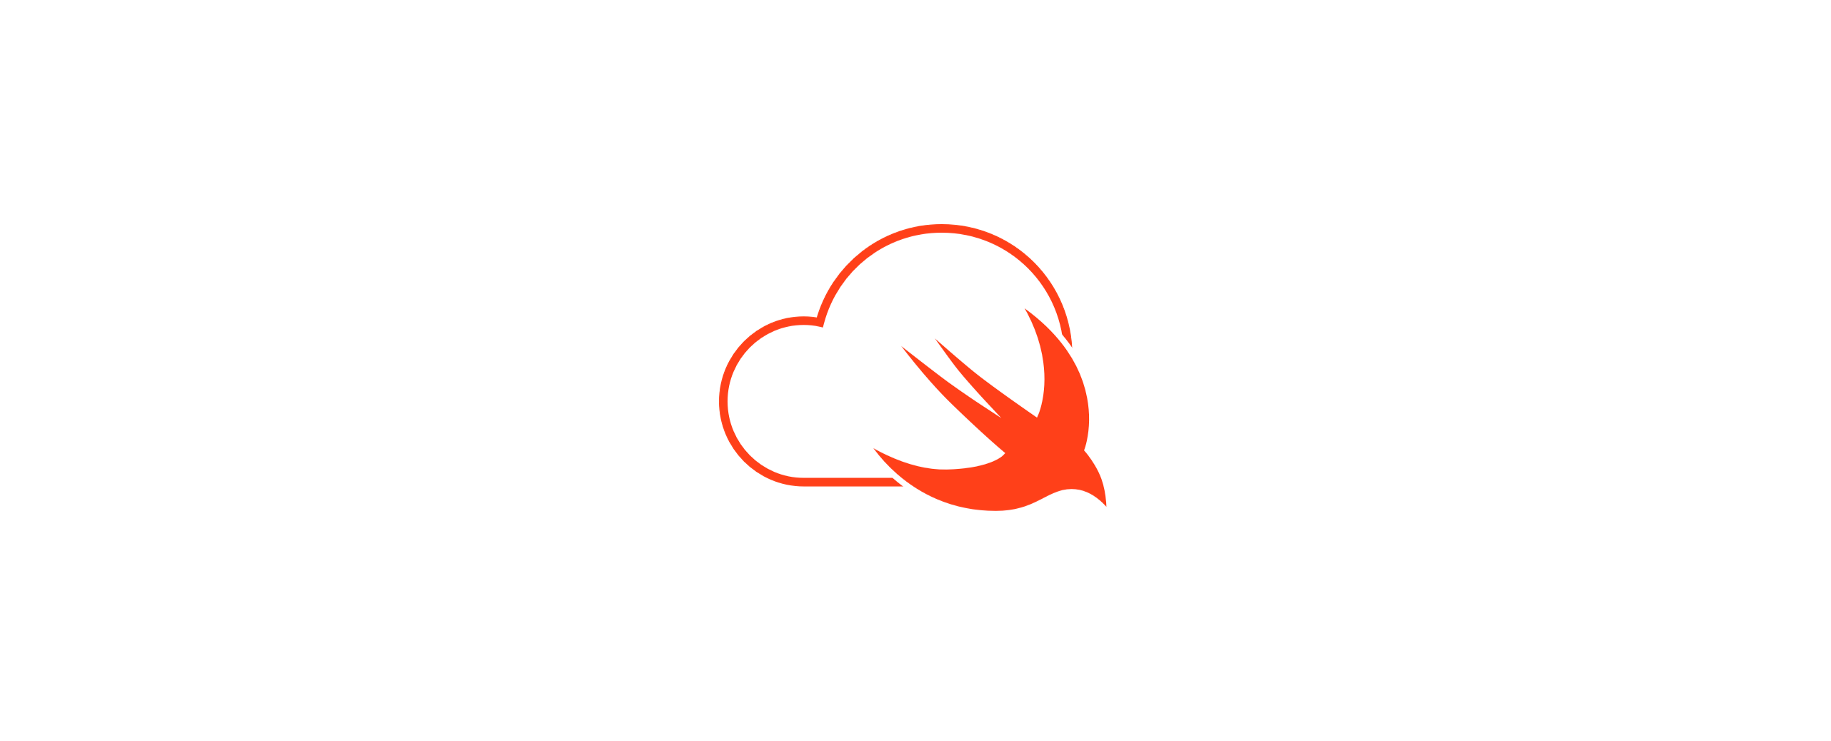 Web Development with Swift - The Swift Web Developer